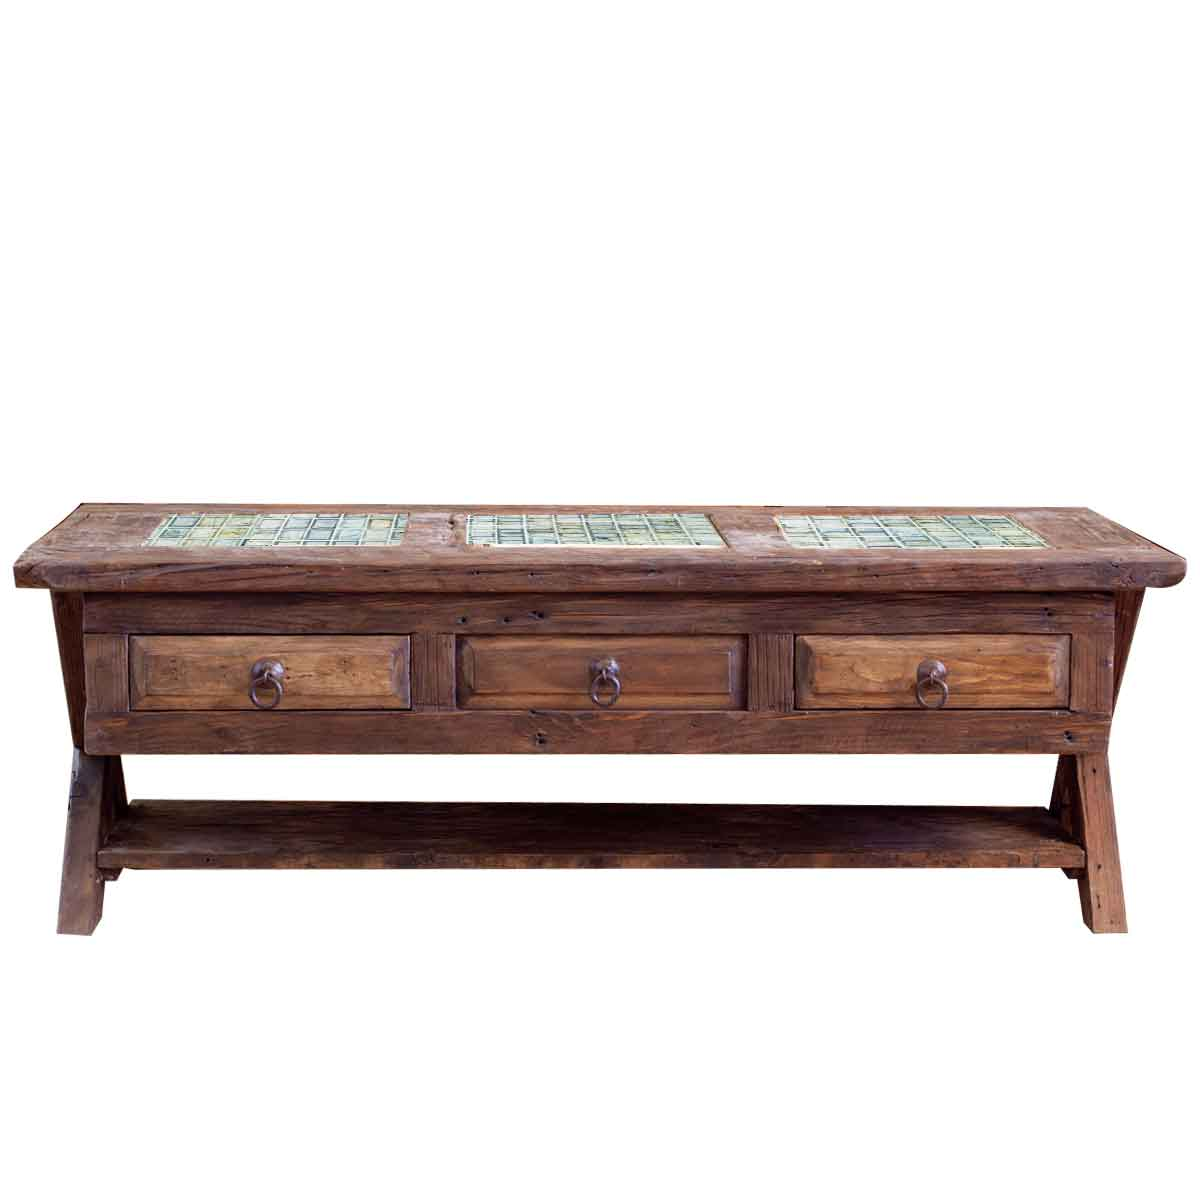 Order Reclaimed Coffee Table With Hideaway Online